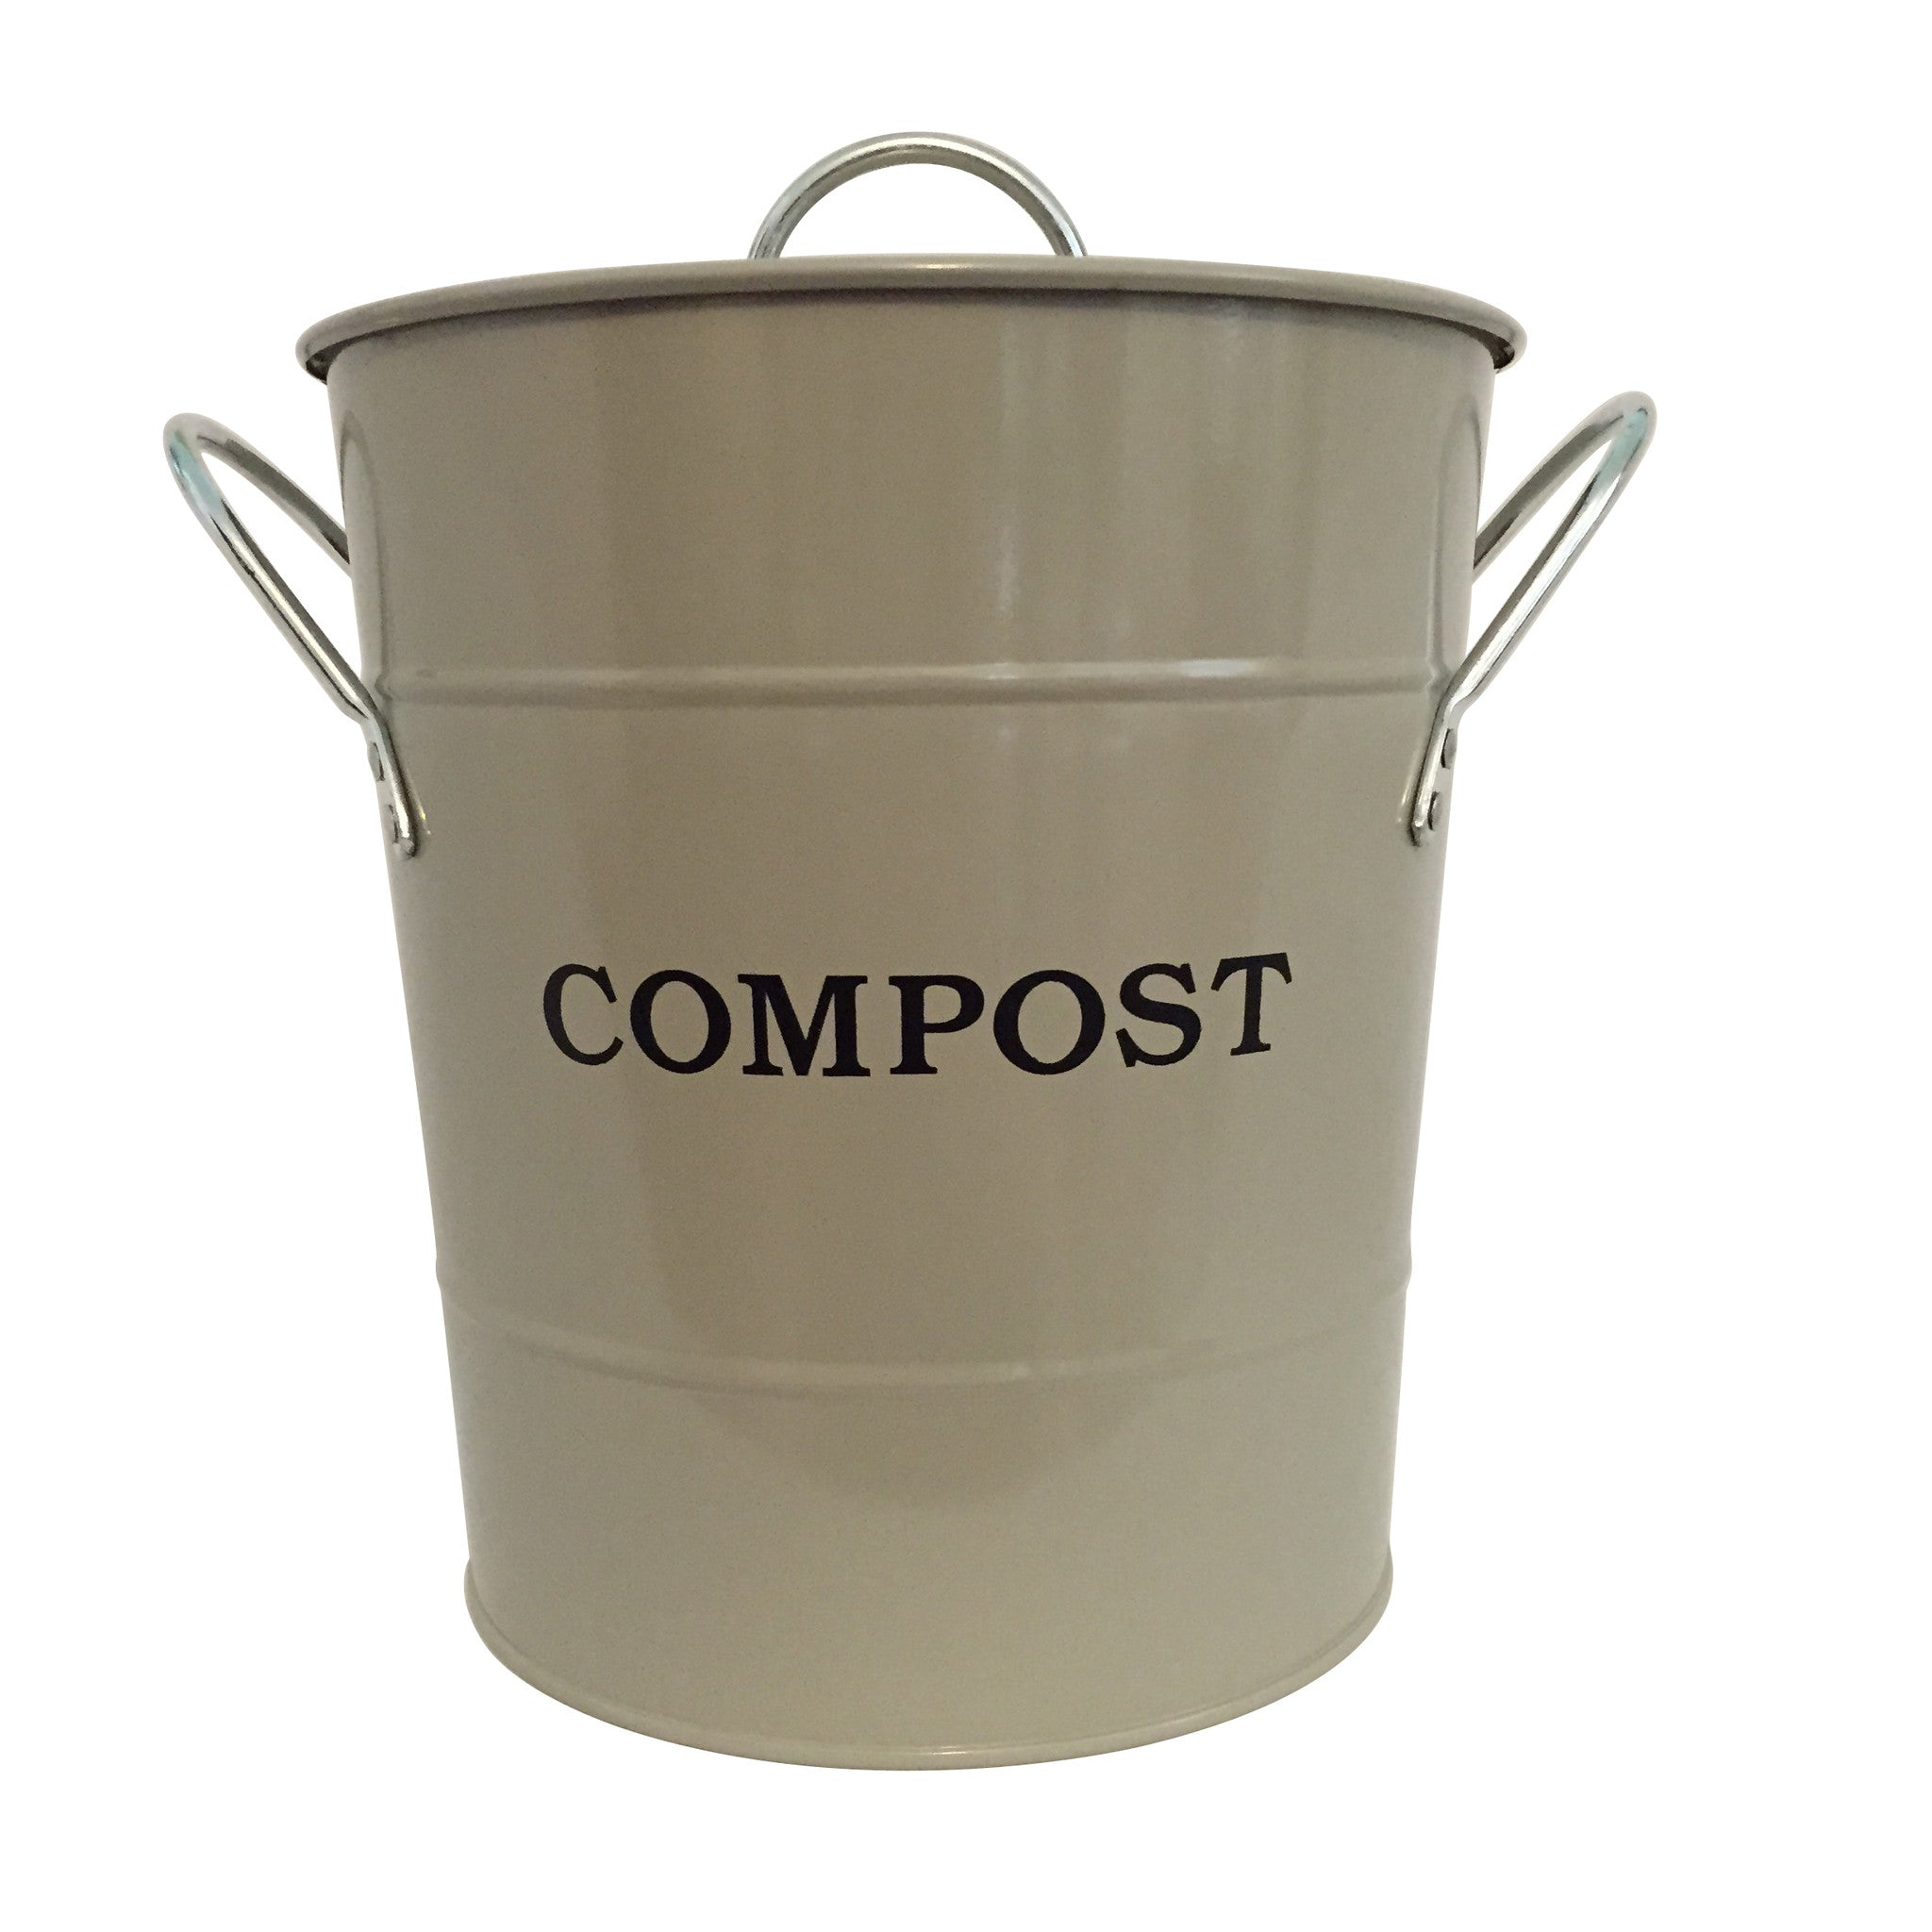 Compost Bucket - Clay - The Potting Shed Garden Tools